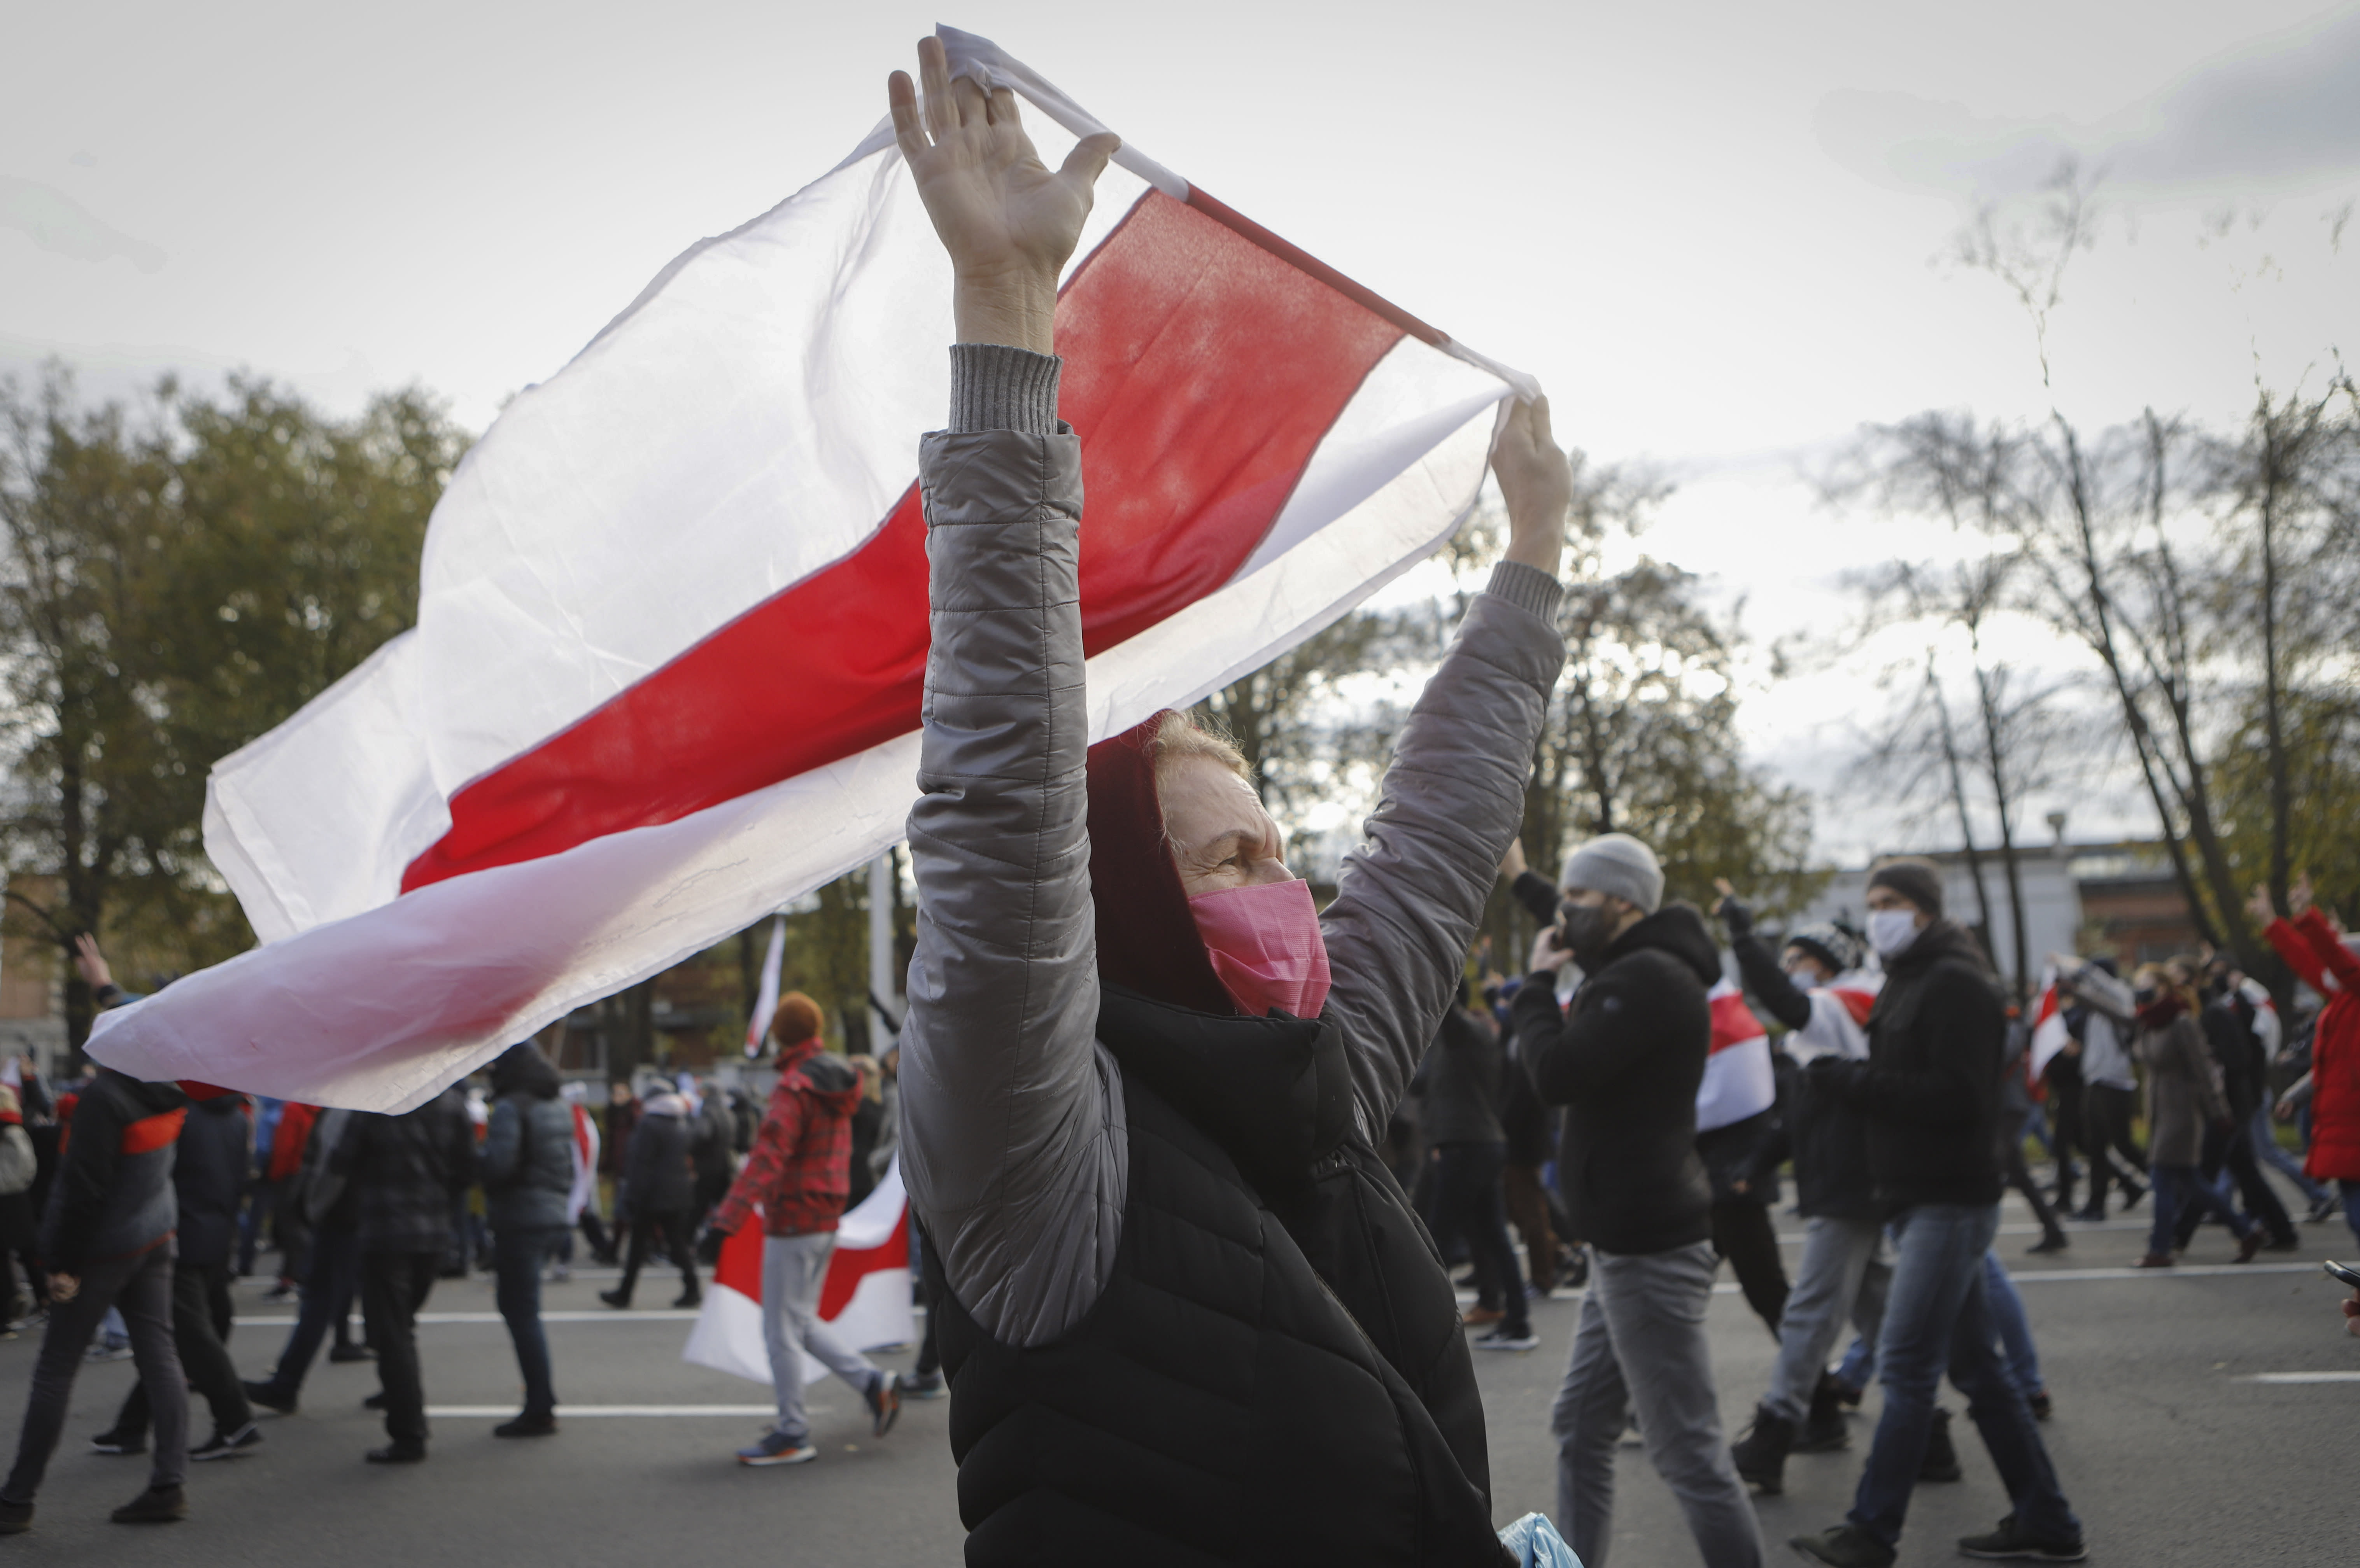 People with old Belarusian national flags march during an opposition rally to protest the official presidential election results in Minsk, Belarus, Sunday, Oct. 18, 2020. Hundreds of thousands of Belarusians have been protesting daily since the Aug. 9 presidential election. (AP Photo)